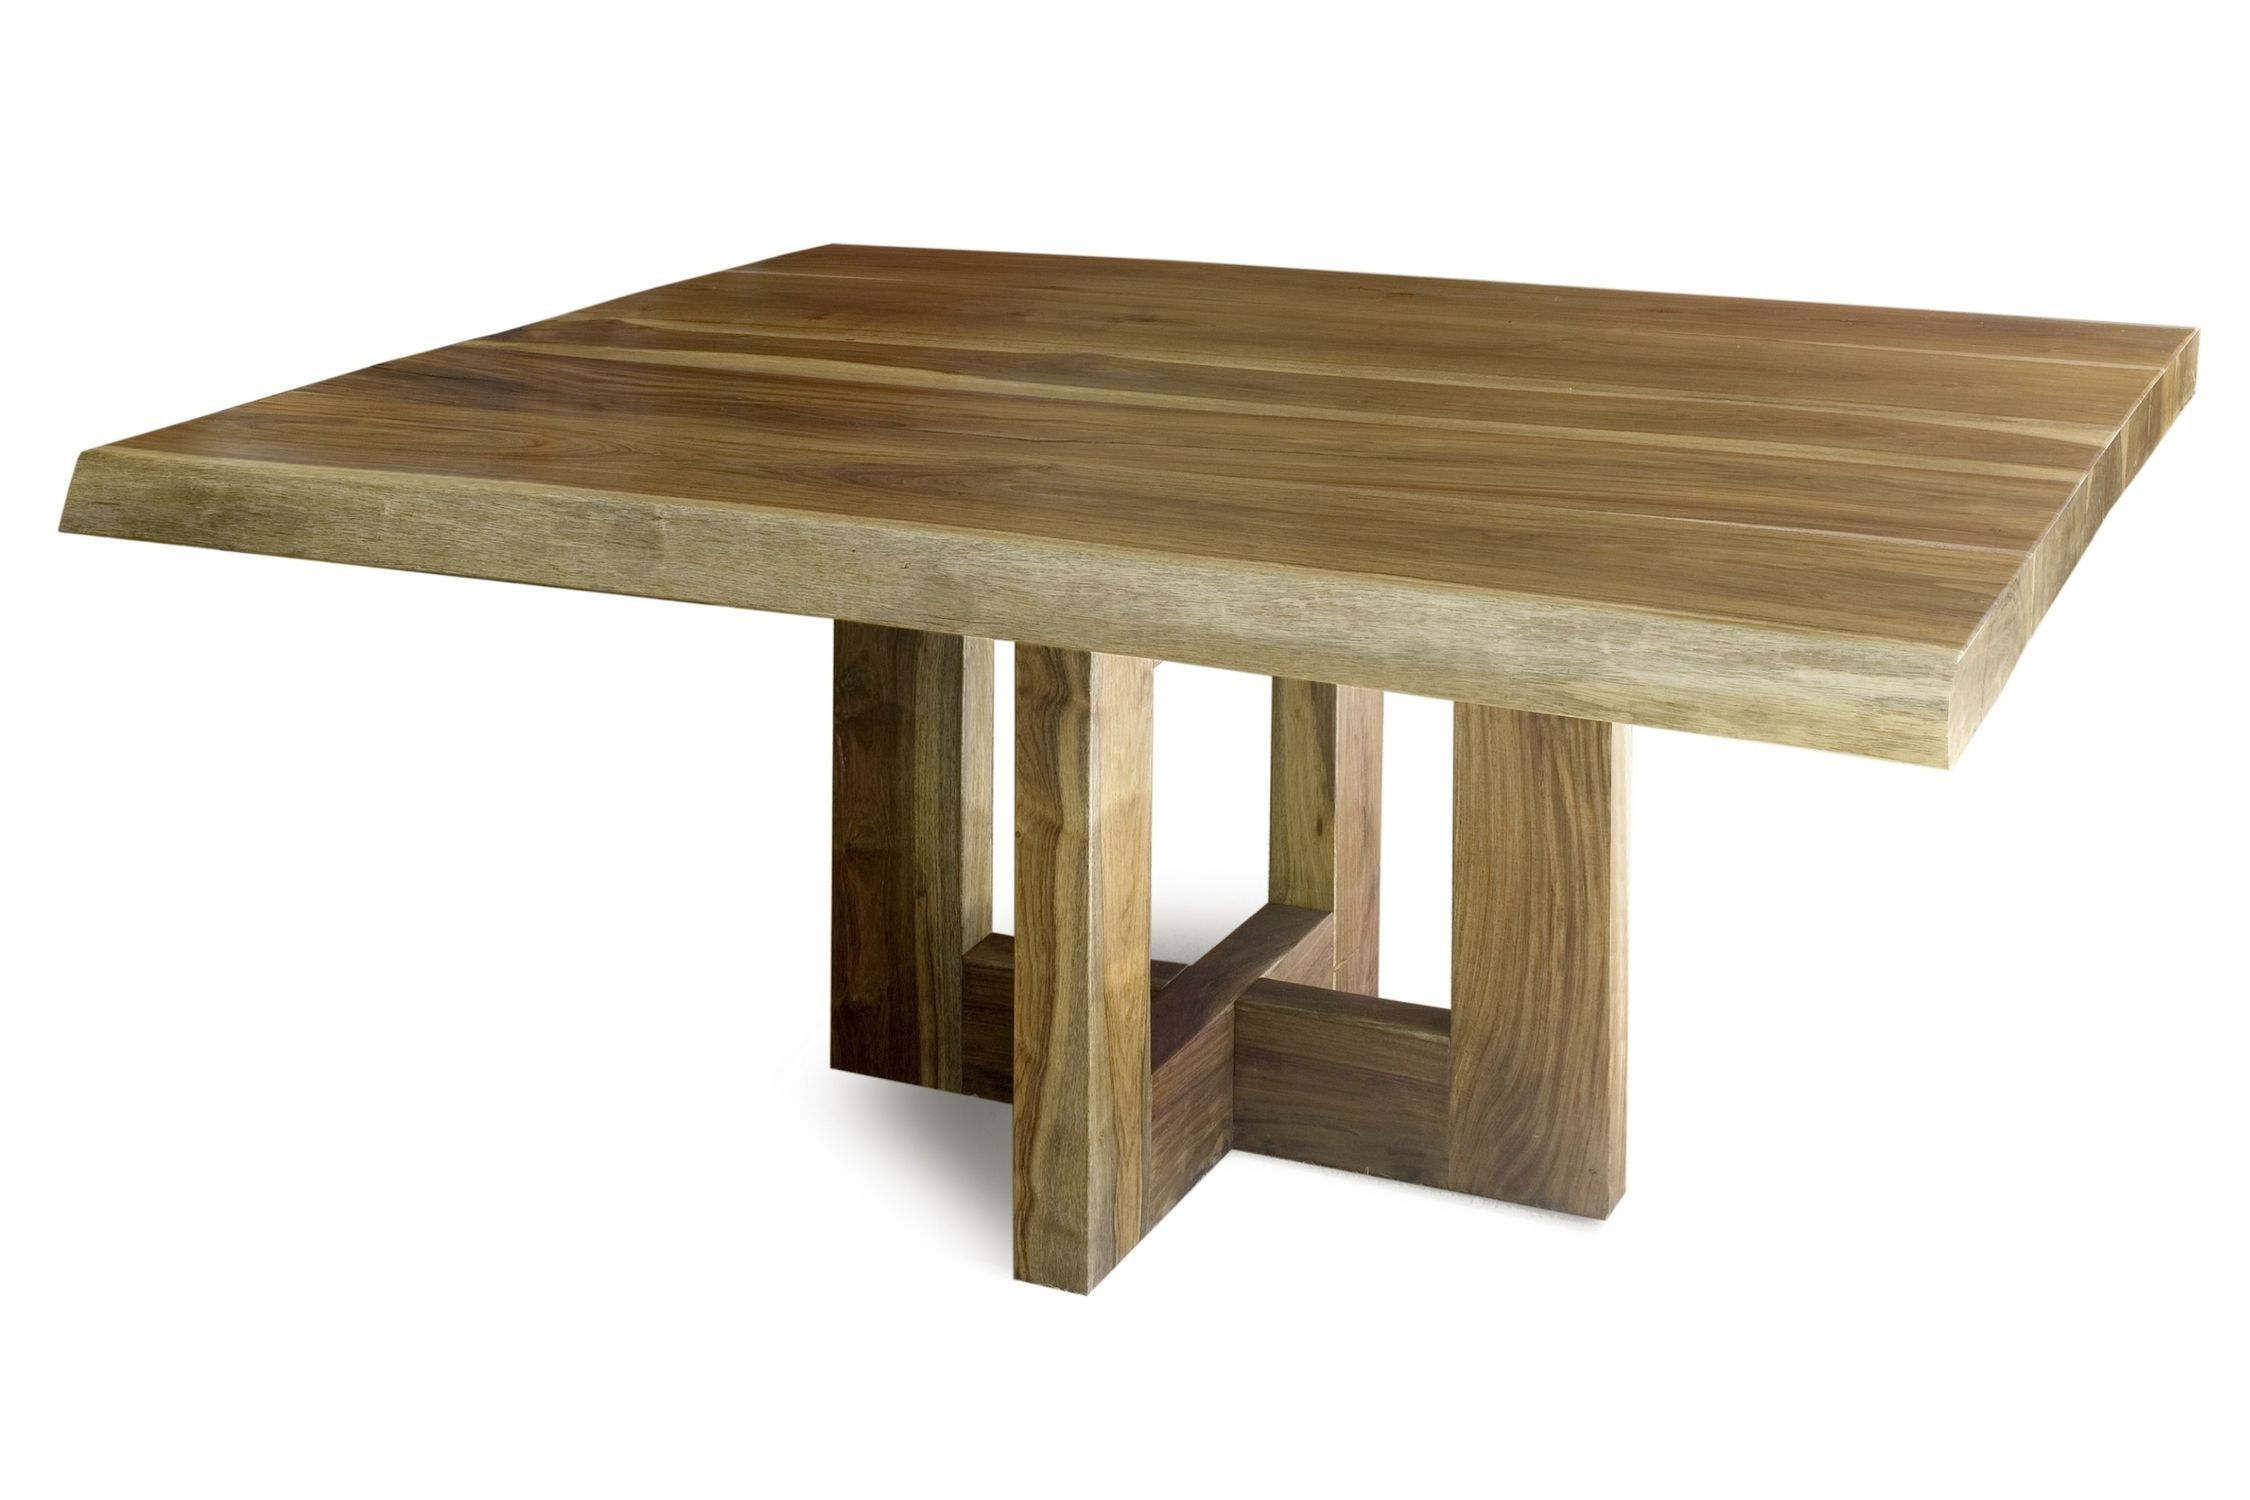 Contemporary rectangle unfinished reclaimed wood table for for Wood table top designs